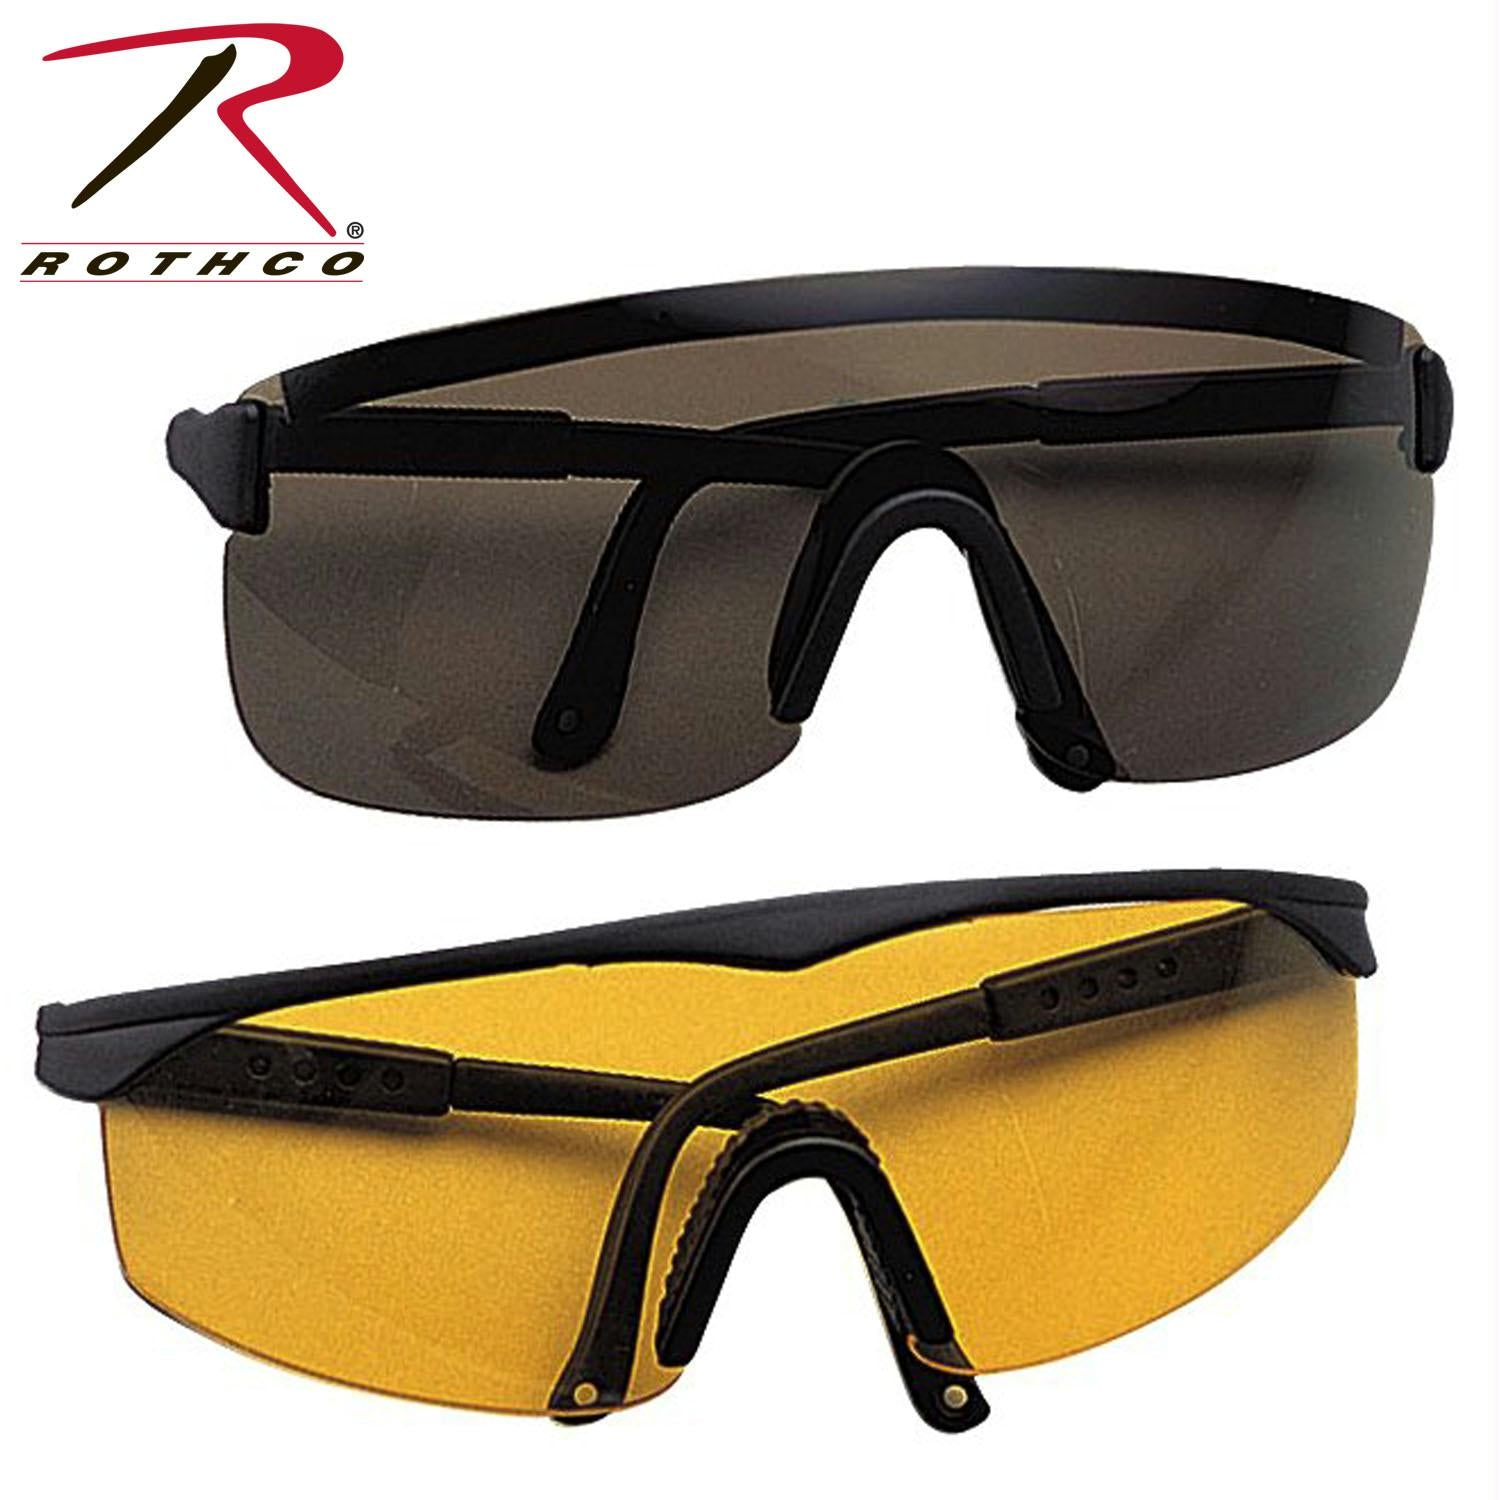 Rothco Single Polycarbonate Lens Sports Glasses - Yellow